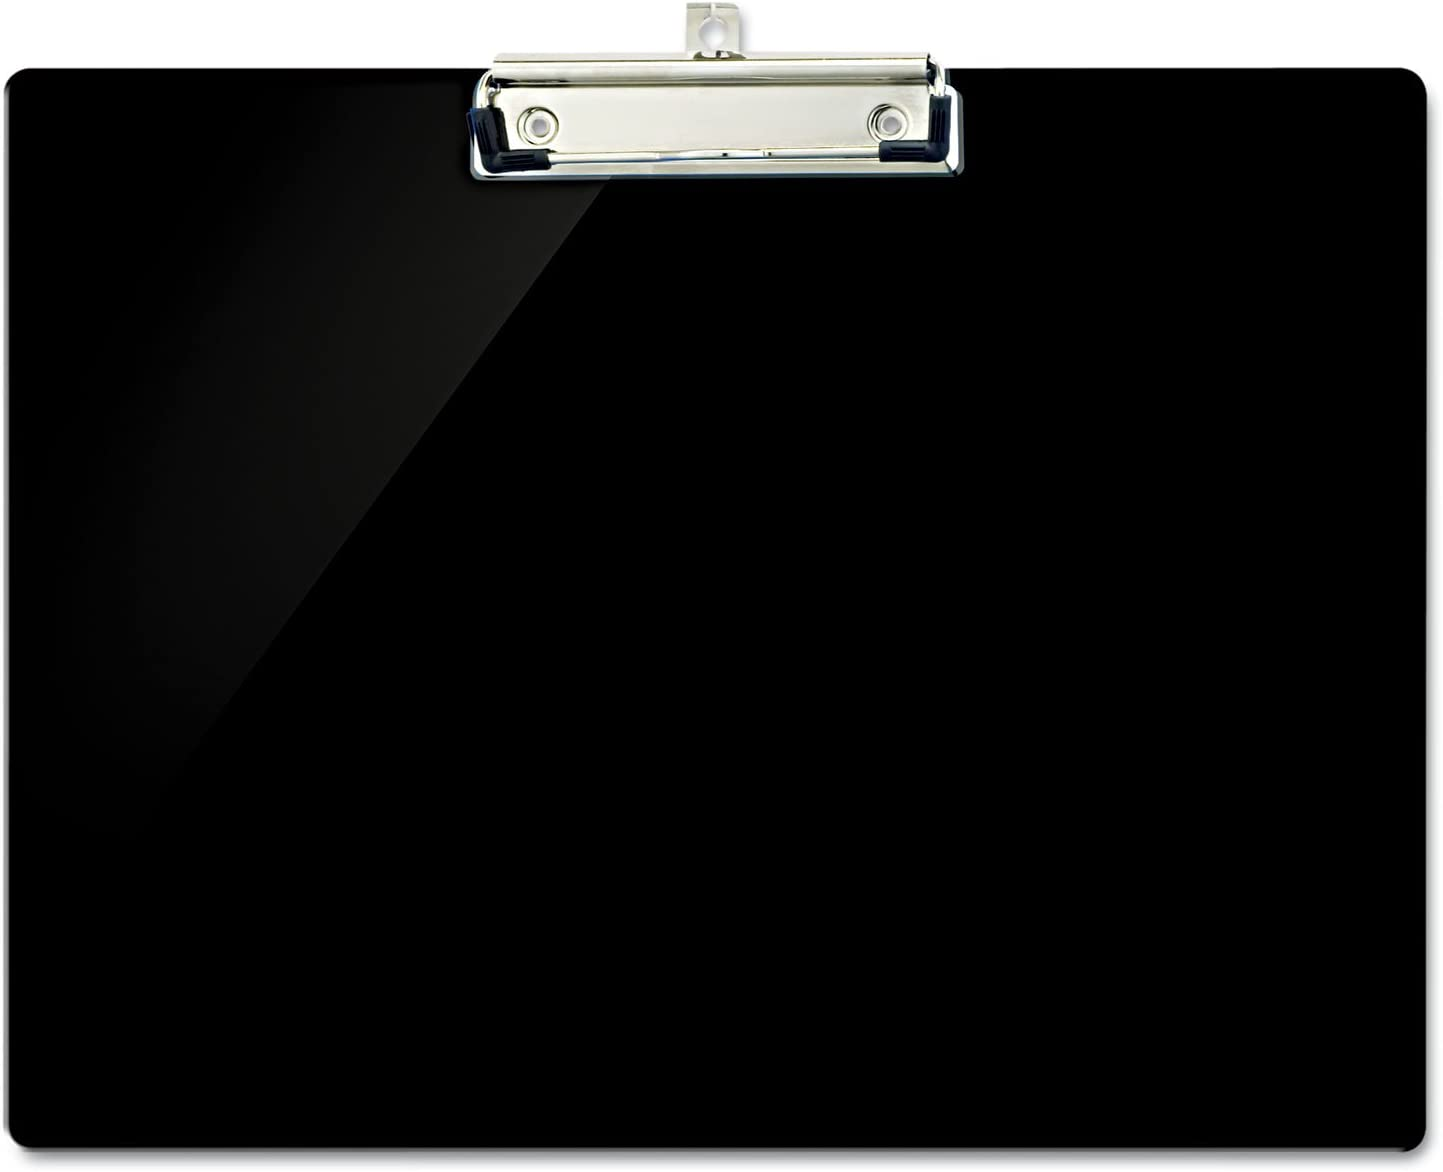 Officemate 83050 Recycled Plastic Landscape Clipboard, 1/2-Inch Capacity, Black